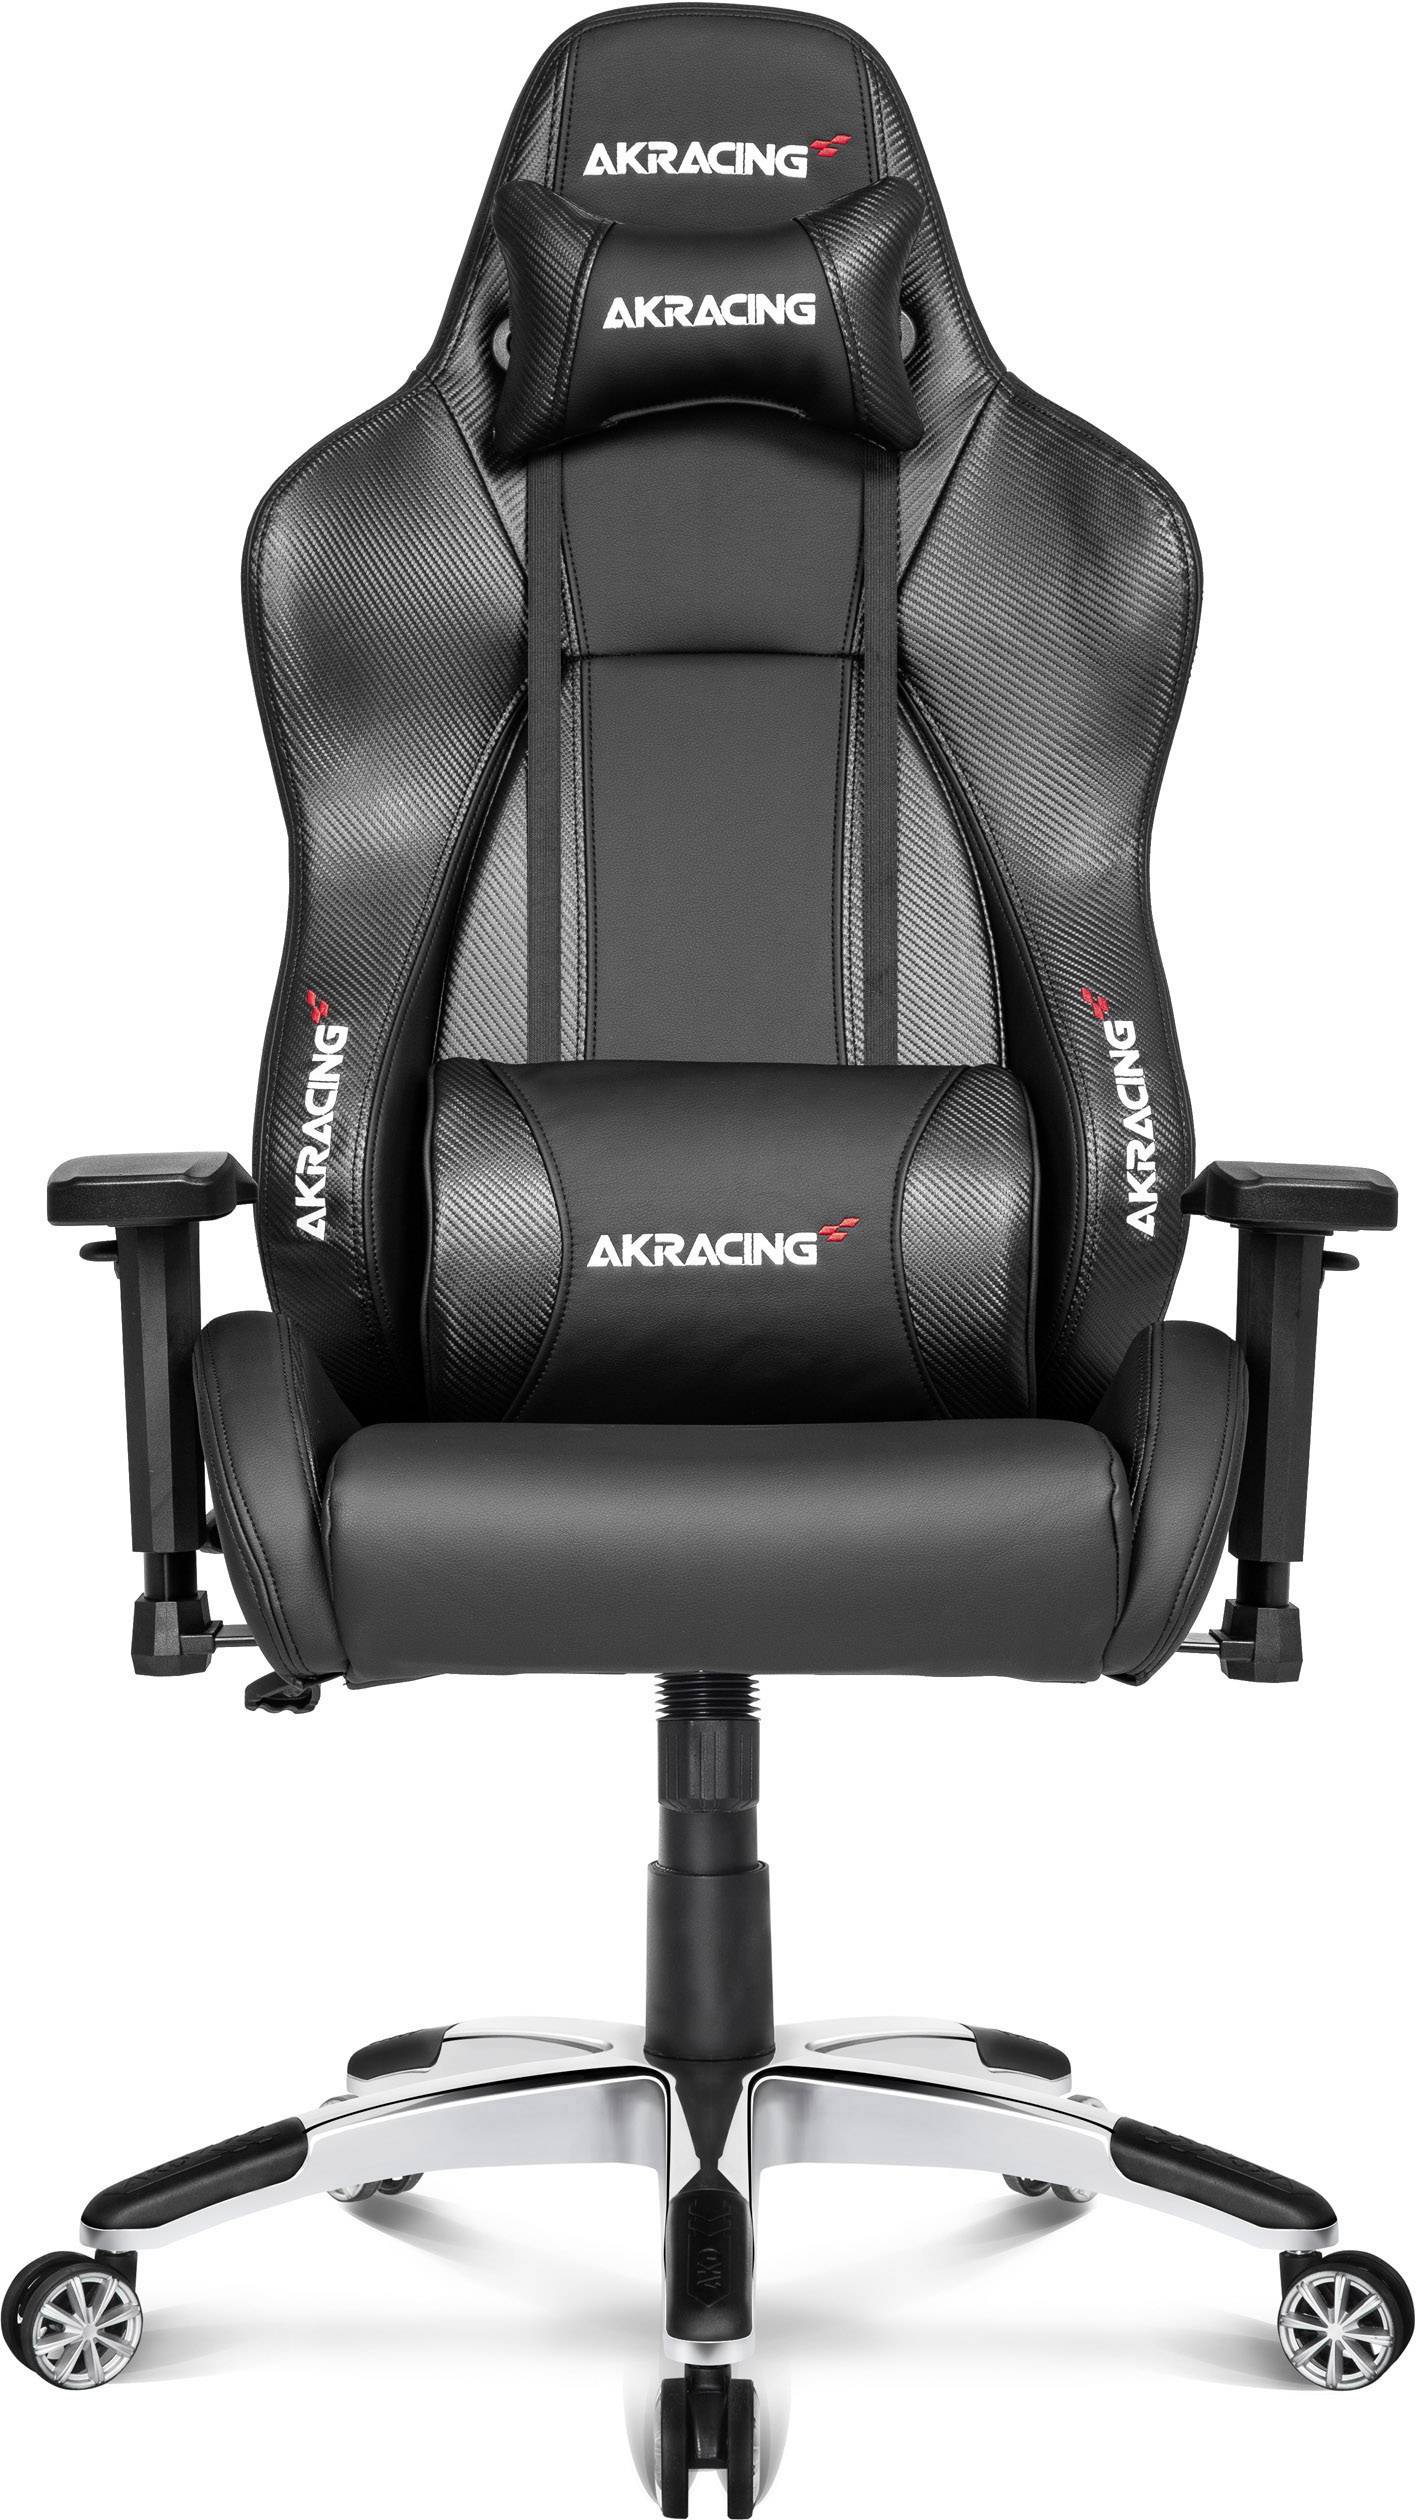 Fauteille Gamer Akracing Master Premium Gaming Stoel Carbon